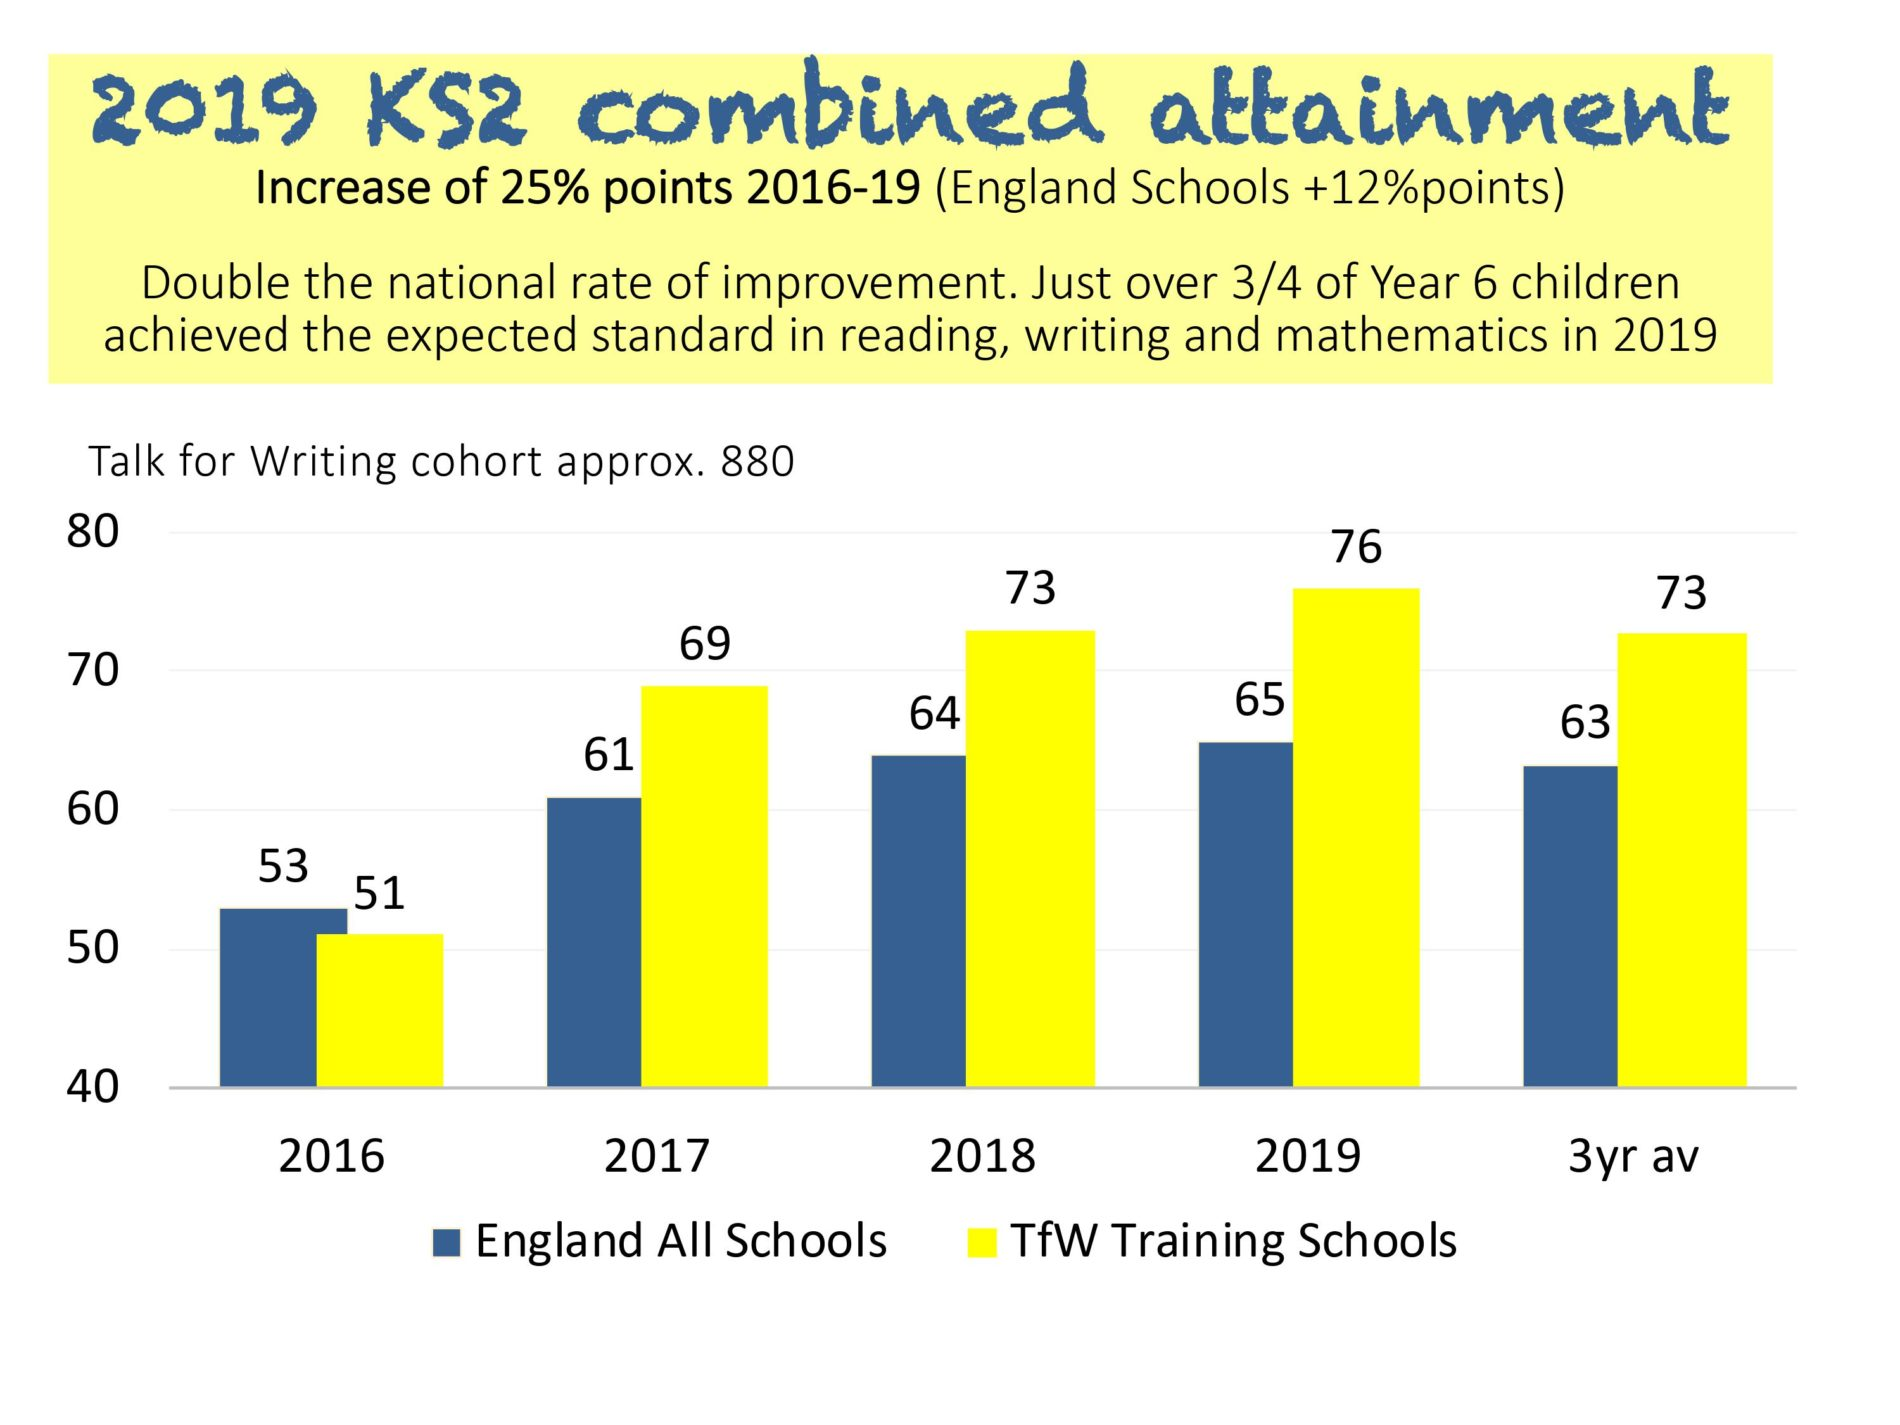 Talk for Writing Training Centres KS2 combined attainment bar chart